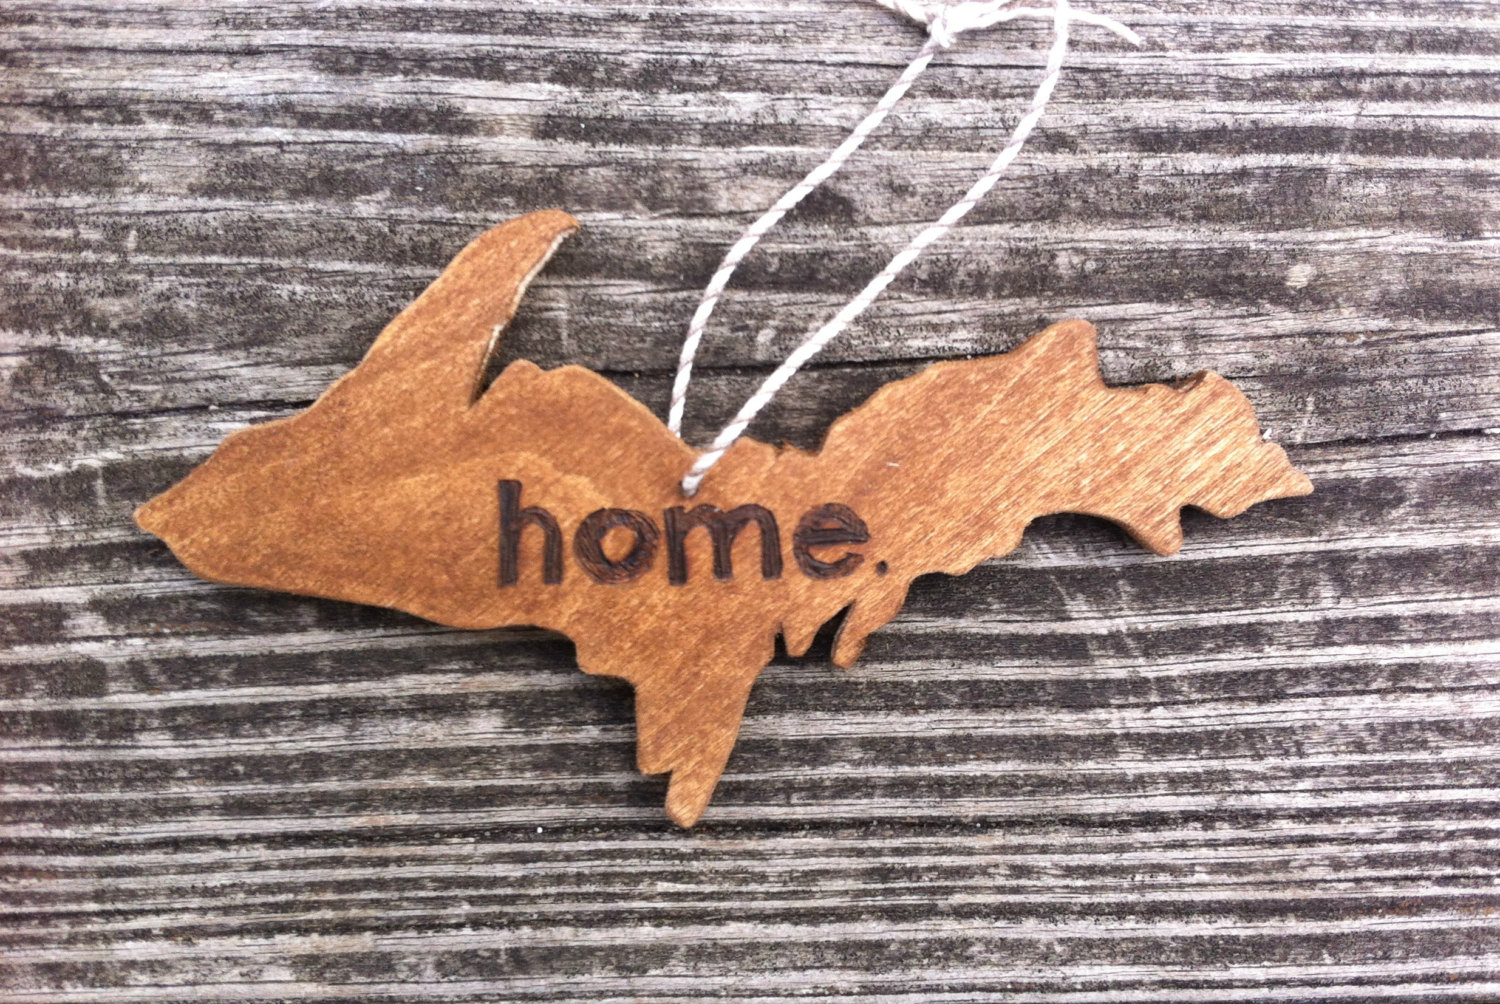 "Michigan Gift Idea: Handmade Home Decor From Wood By Al // Featured - Michigan Upper Peninsula ""Home"" Ornament (via Wading in Big Shoes)"